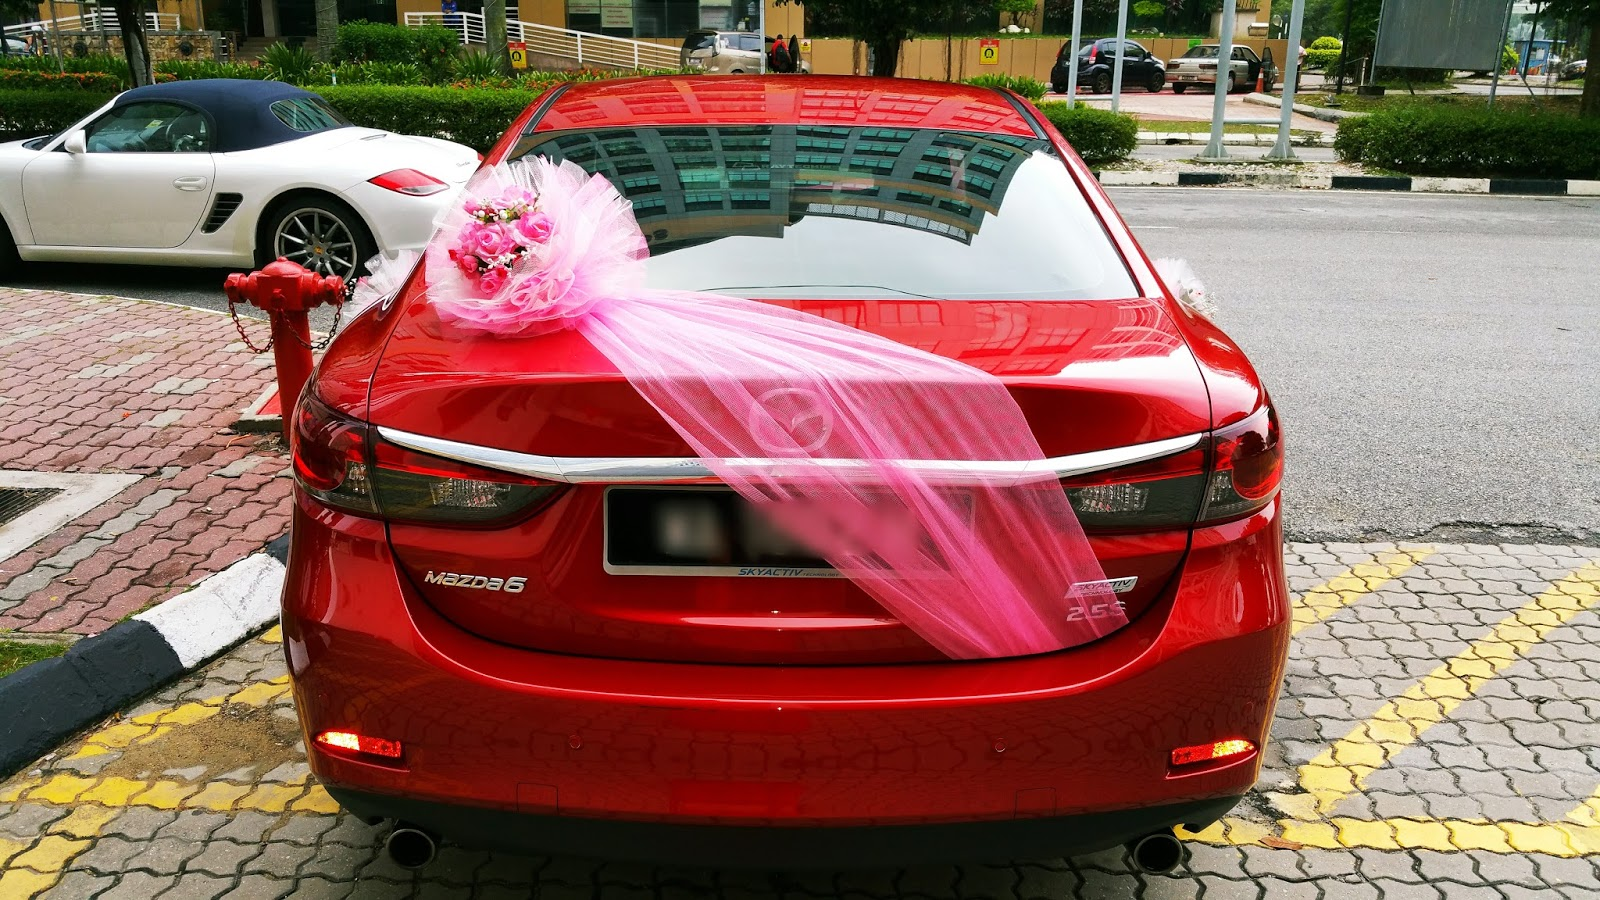 Redorca malaysia wedding and event car rental wedding car for Automobile decorations home